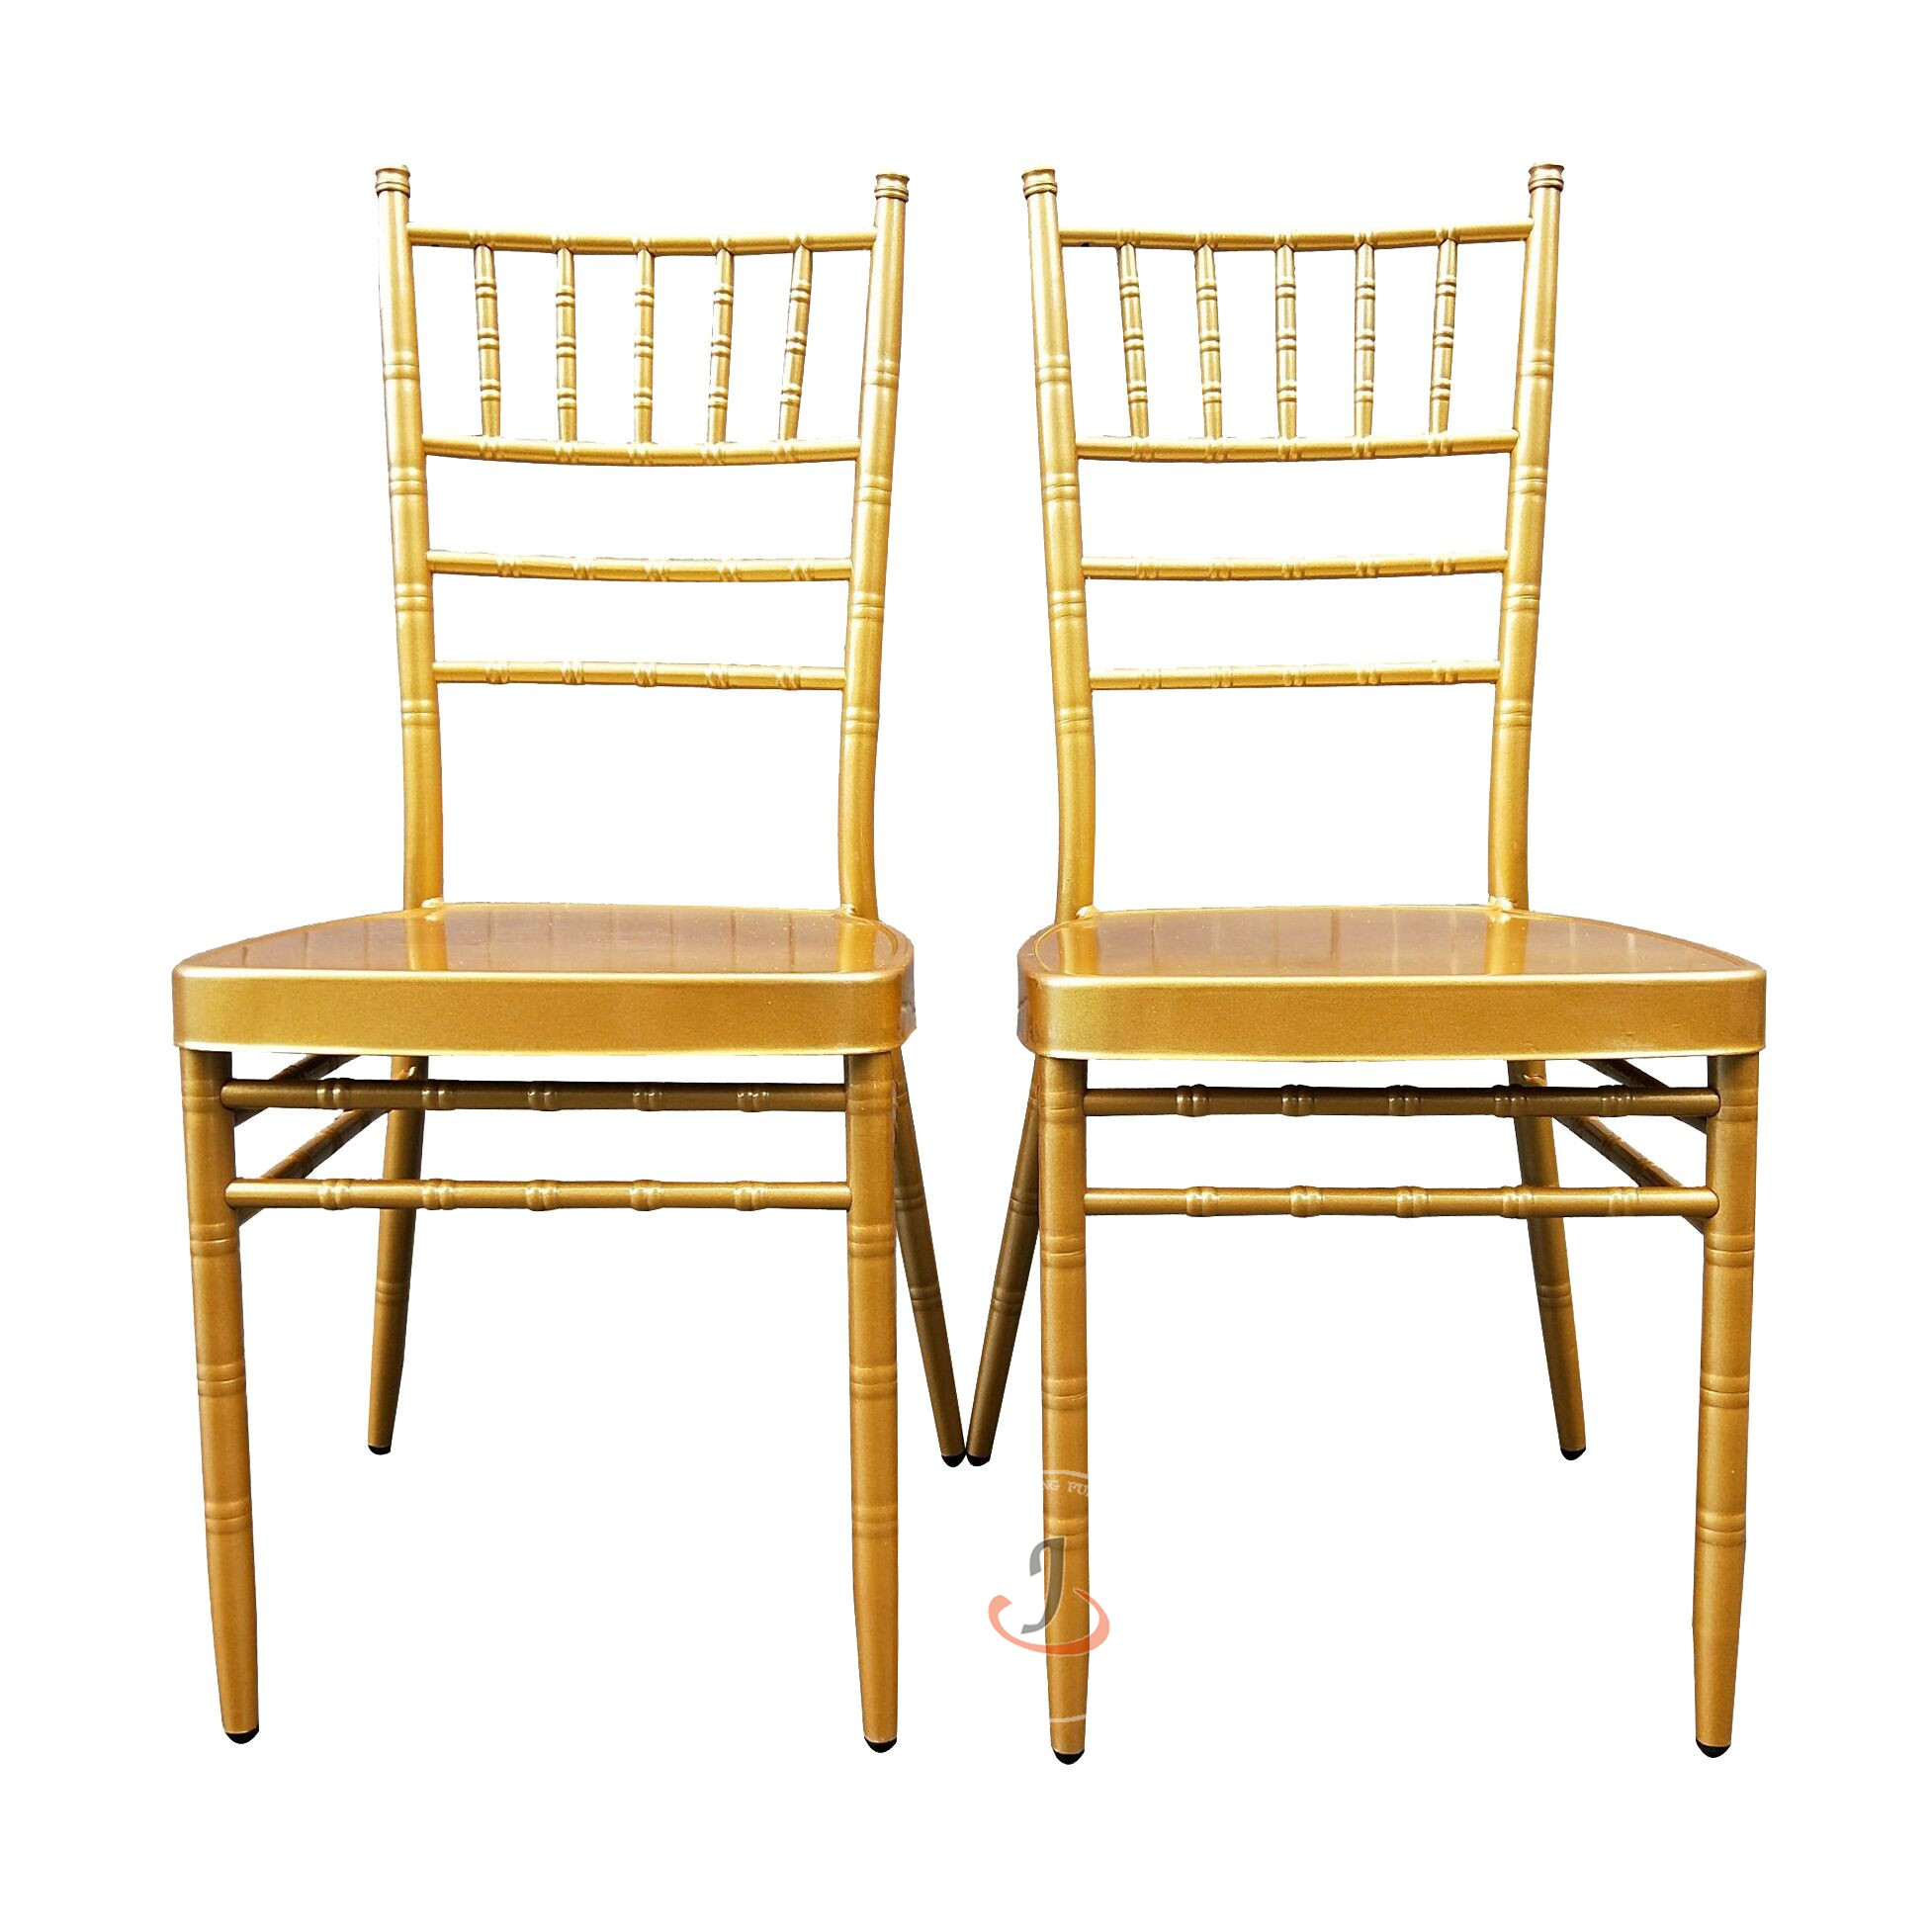 High definition Chairs For Theater Engineering -